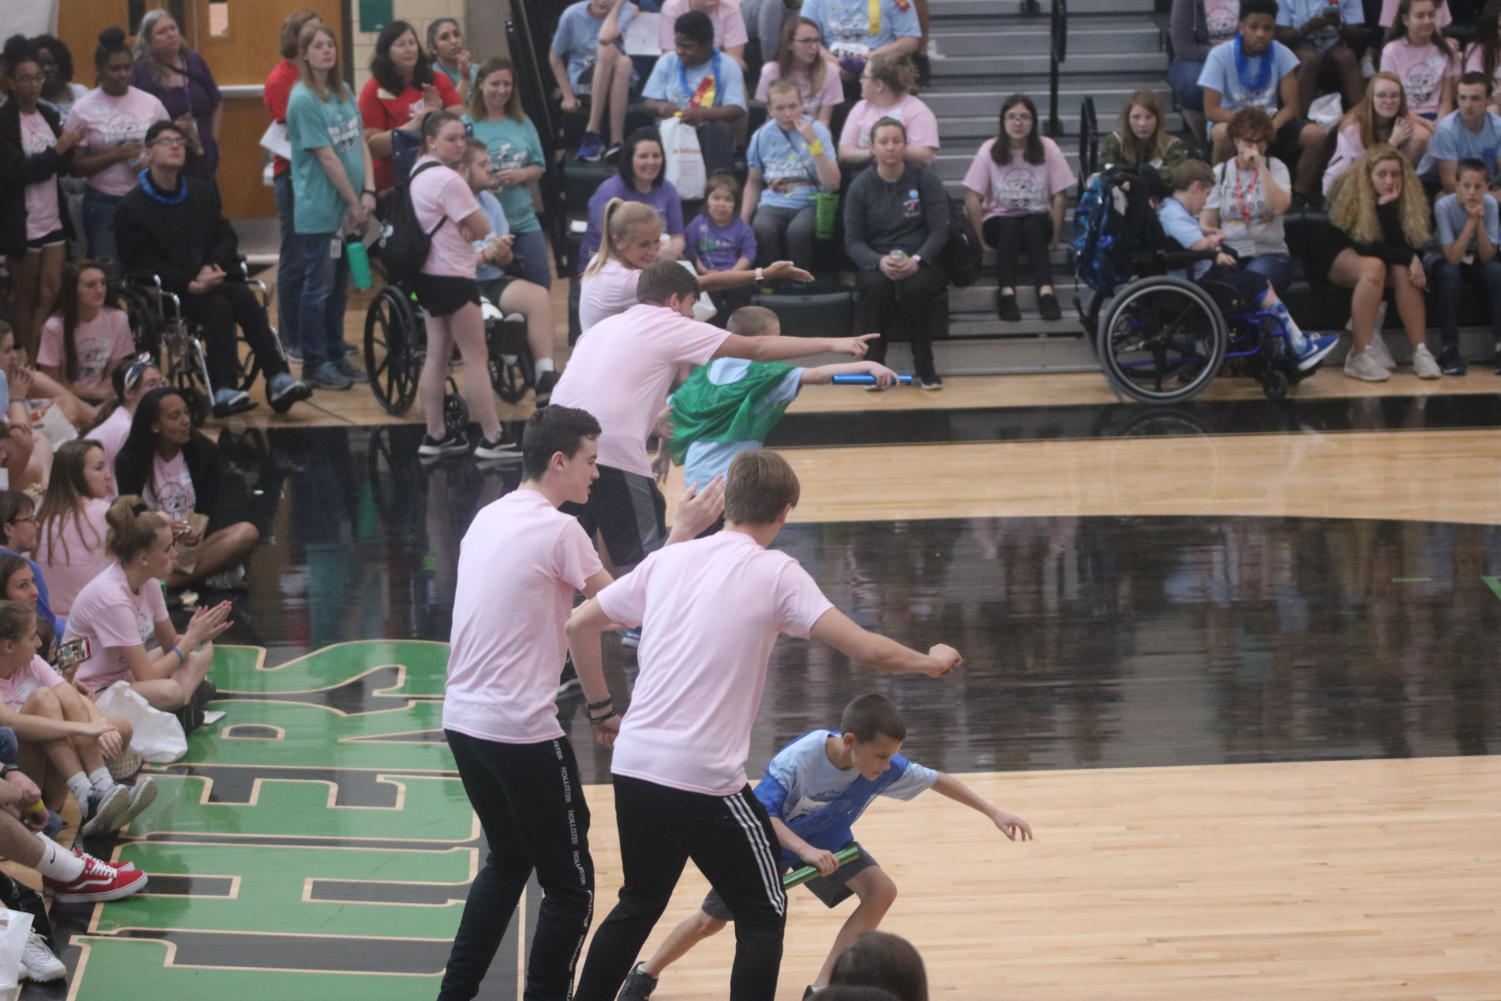 Special Olympics: A Special Day for All